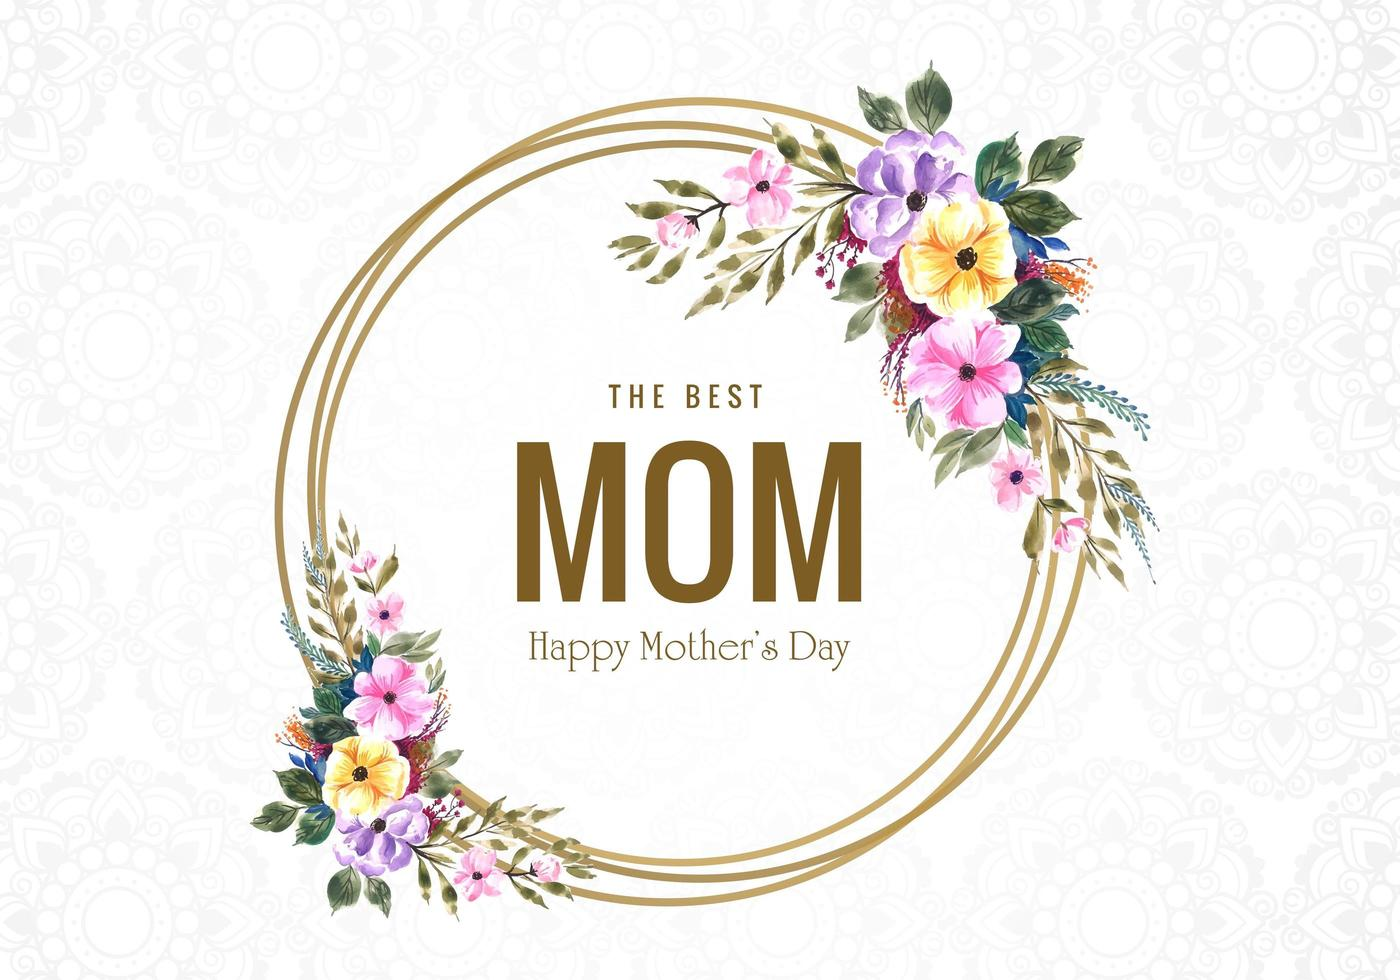 Happy Mother's Day flowers and circle frame card vector